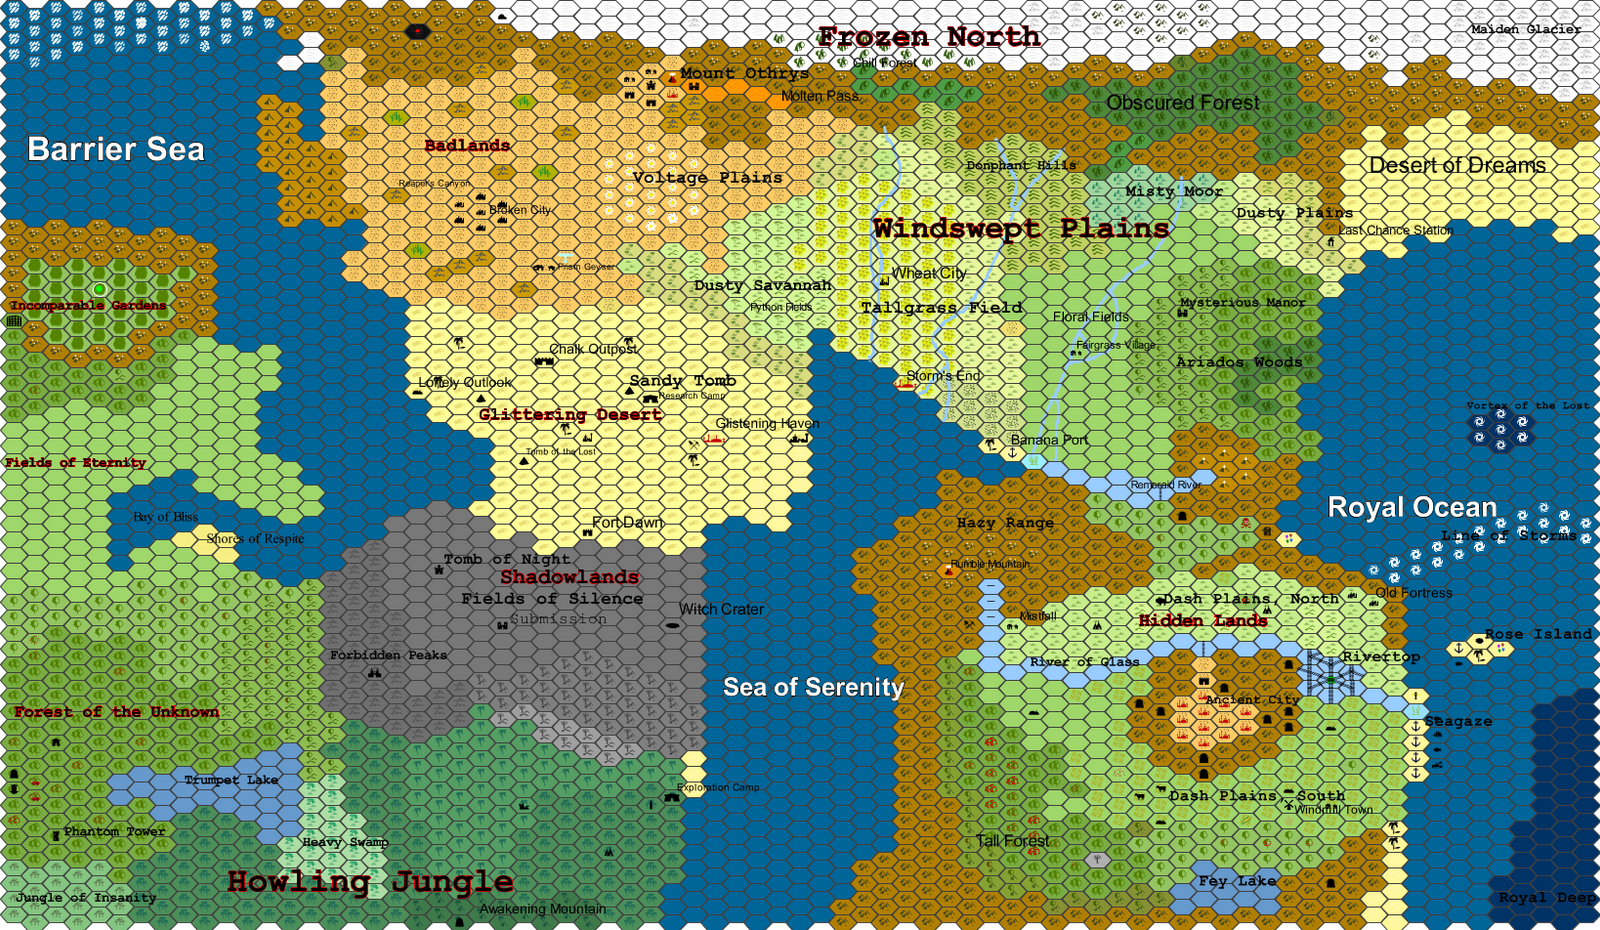 Pokemon Mystery Dungeon D20 World Map by Wiseman-Dragonexx ... on maps of animals, maps of movies, maps of western, maps of nature, maps of god, maps of everything, maps of london, maps of hollywood, maps of fun, maps of florida, maps of heaven, maps of sports, maps of castle,